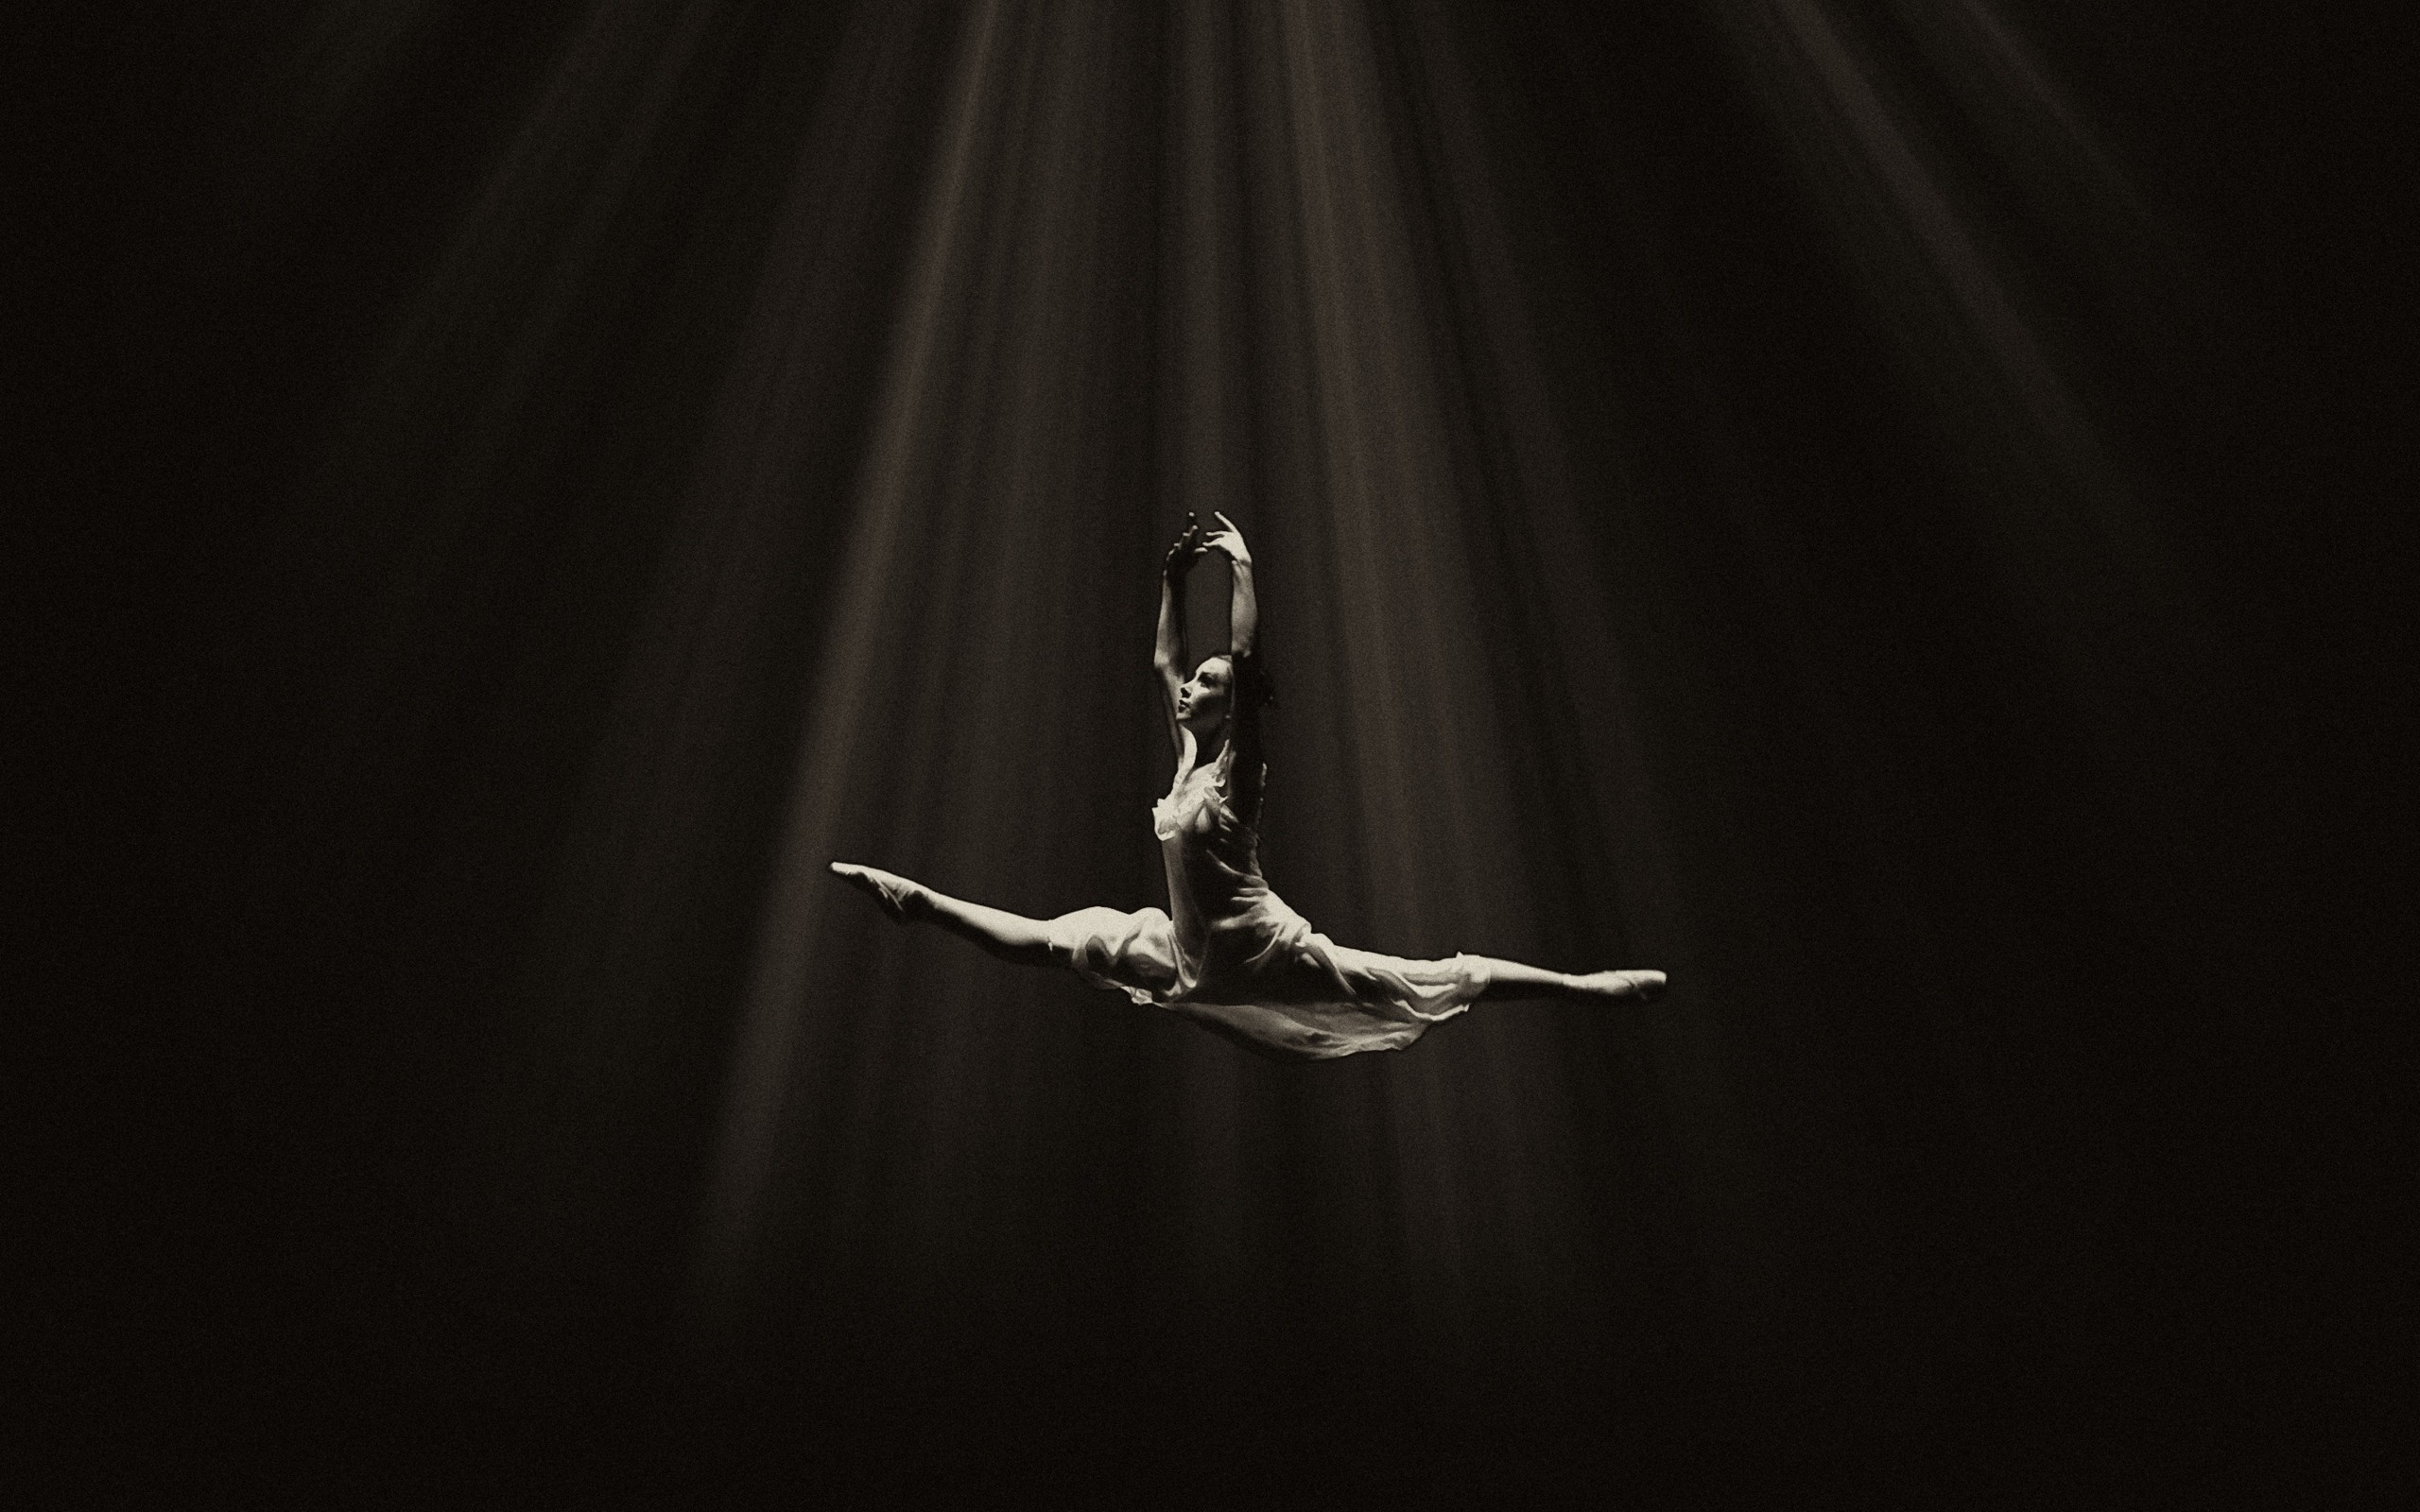 2560x1600  Wallpaper ballerina, ballet, dance, bw, flight